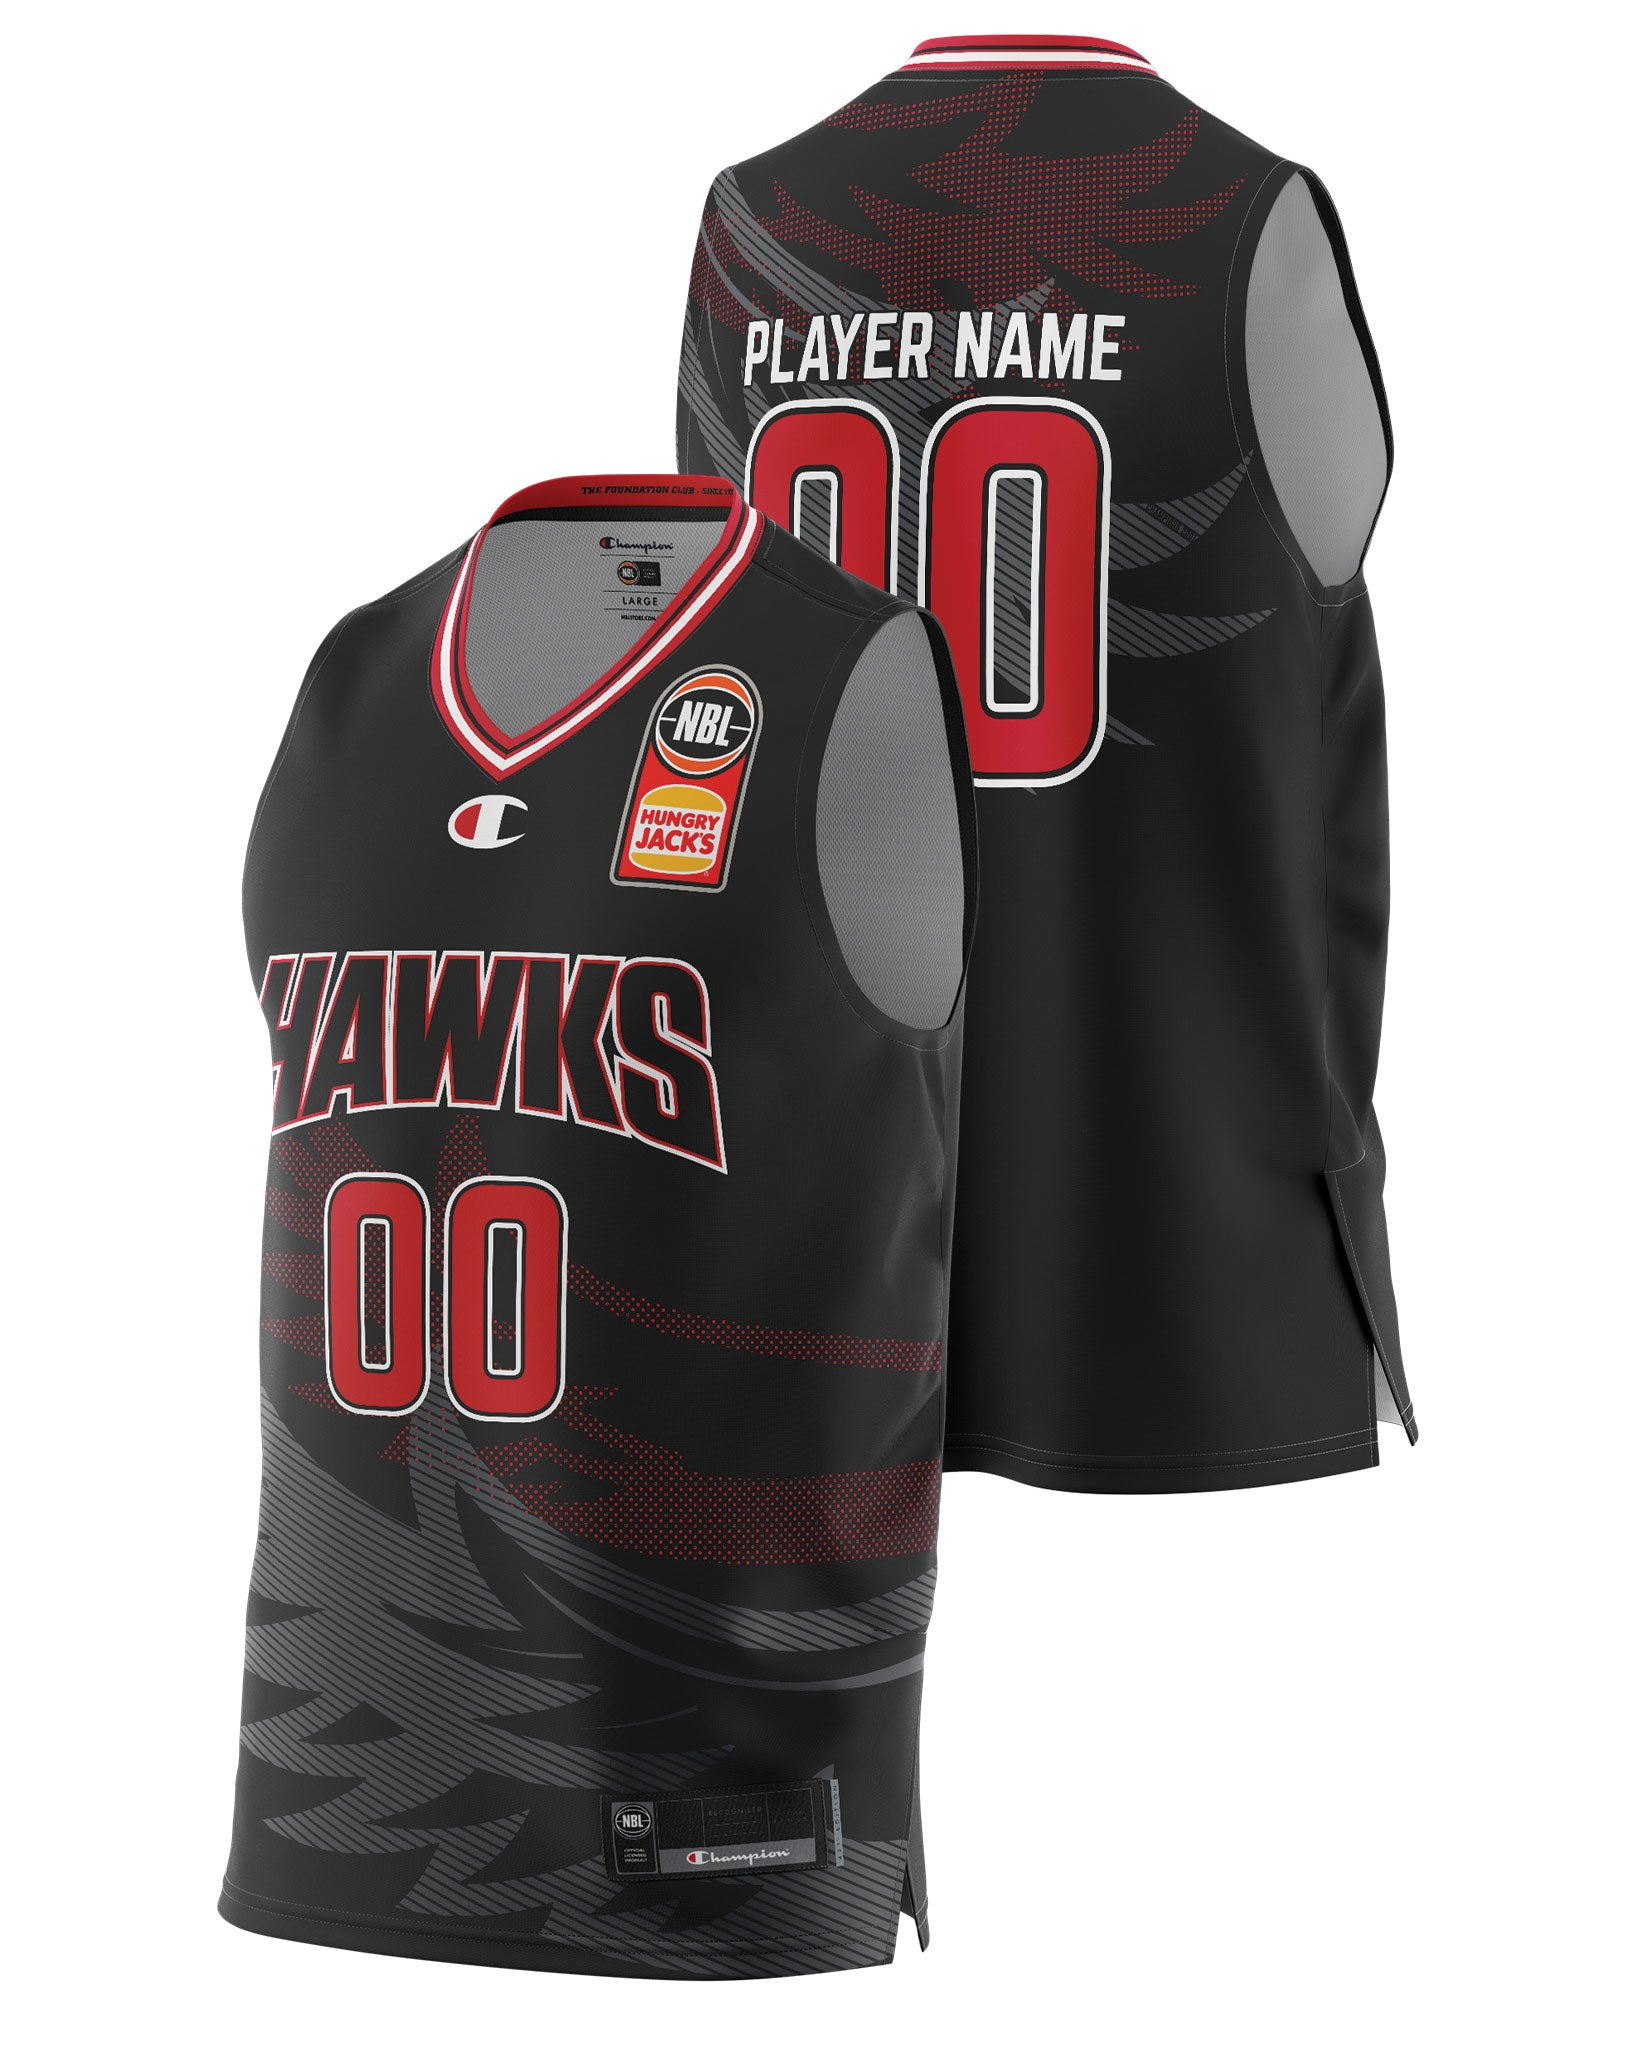 Hawks 20/21 Authentic Home Jersey - Other Players